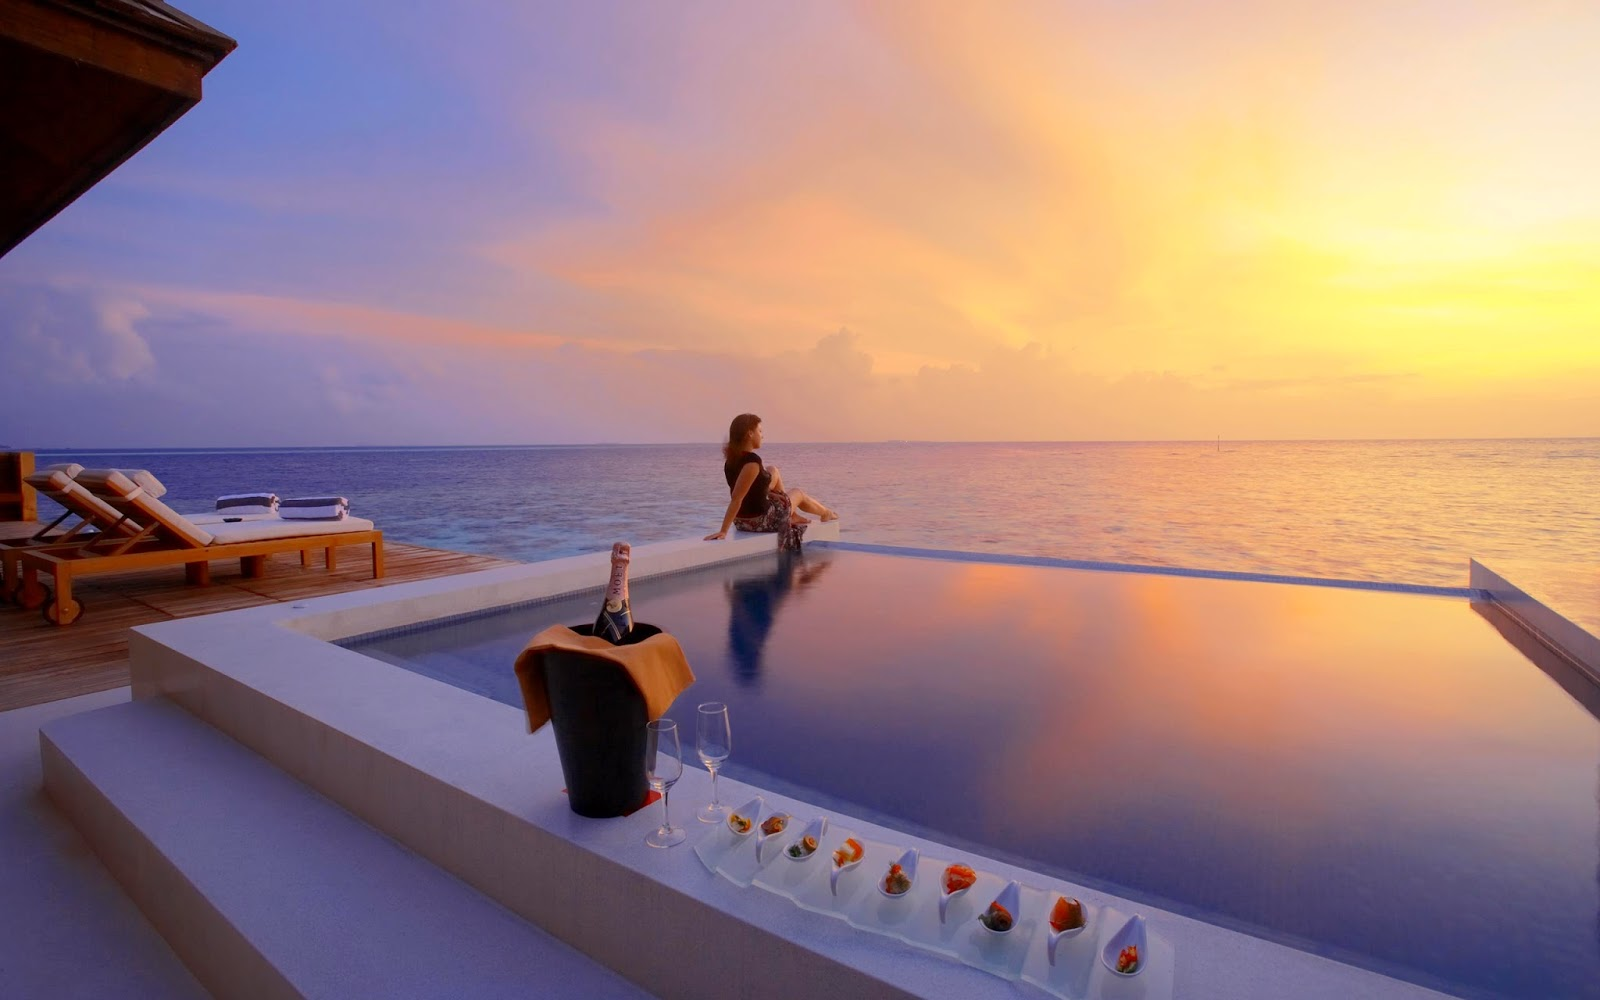 Luxury Hotels HD Wallpapers. Luxury Hotels HD Wallpapers   Hotels Pictures and Images   Soft